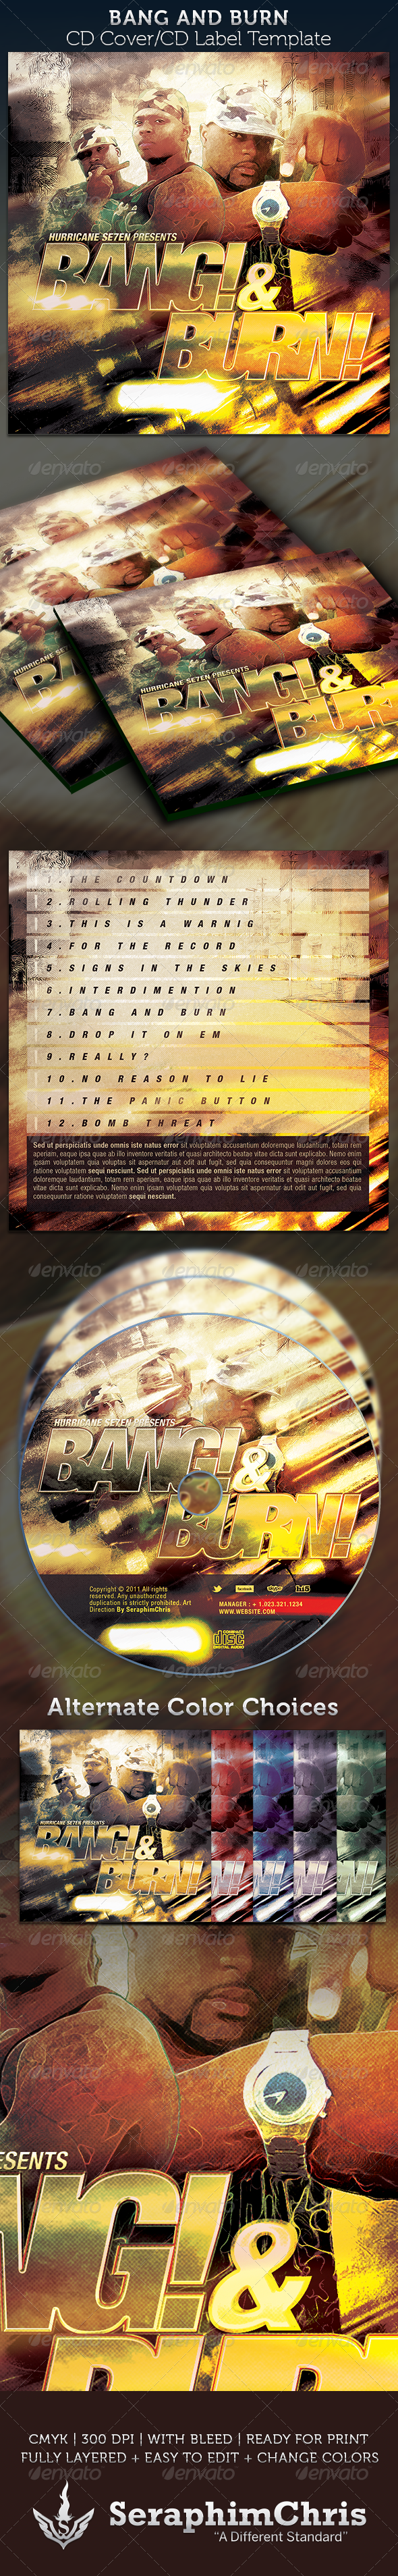 Bang & Burn CD Cover Artwork Template - CD & DVD artwork Print Templates